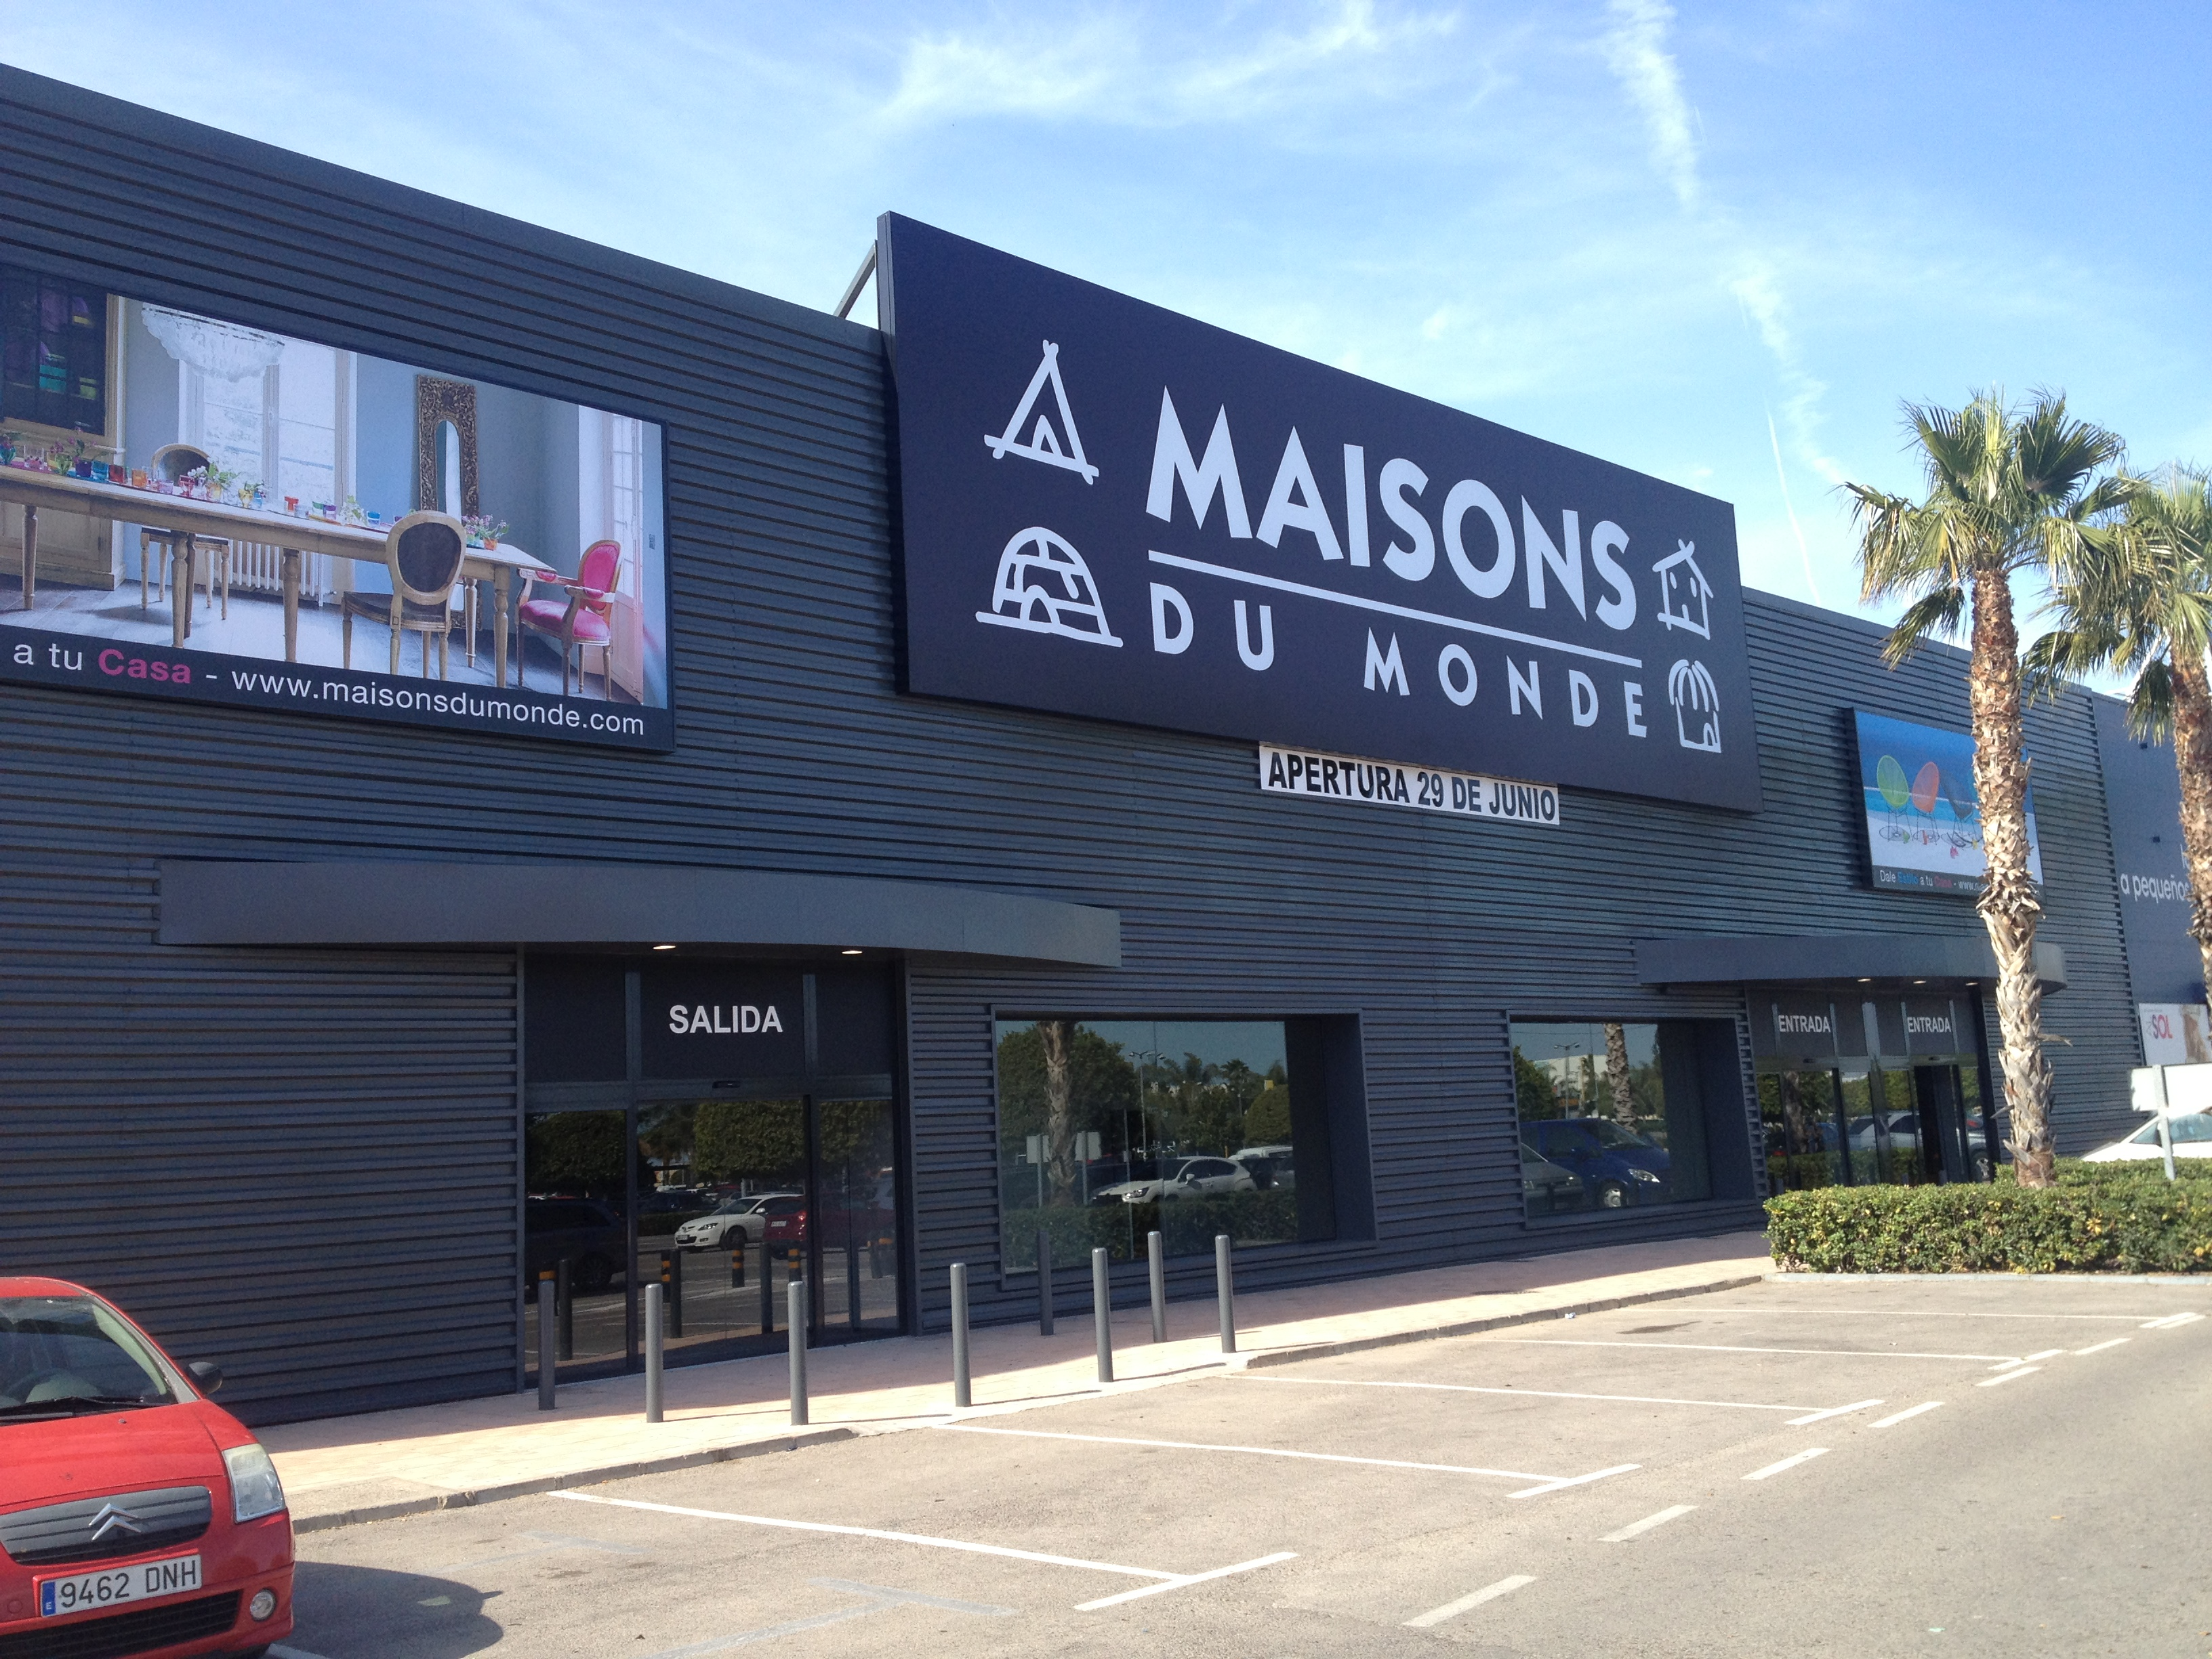 Maisons du monde in bonaire shophunters for Maison du monde